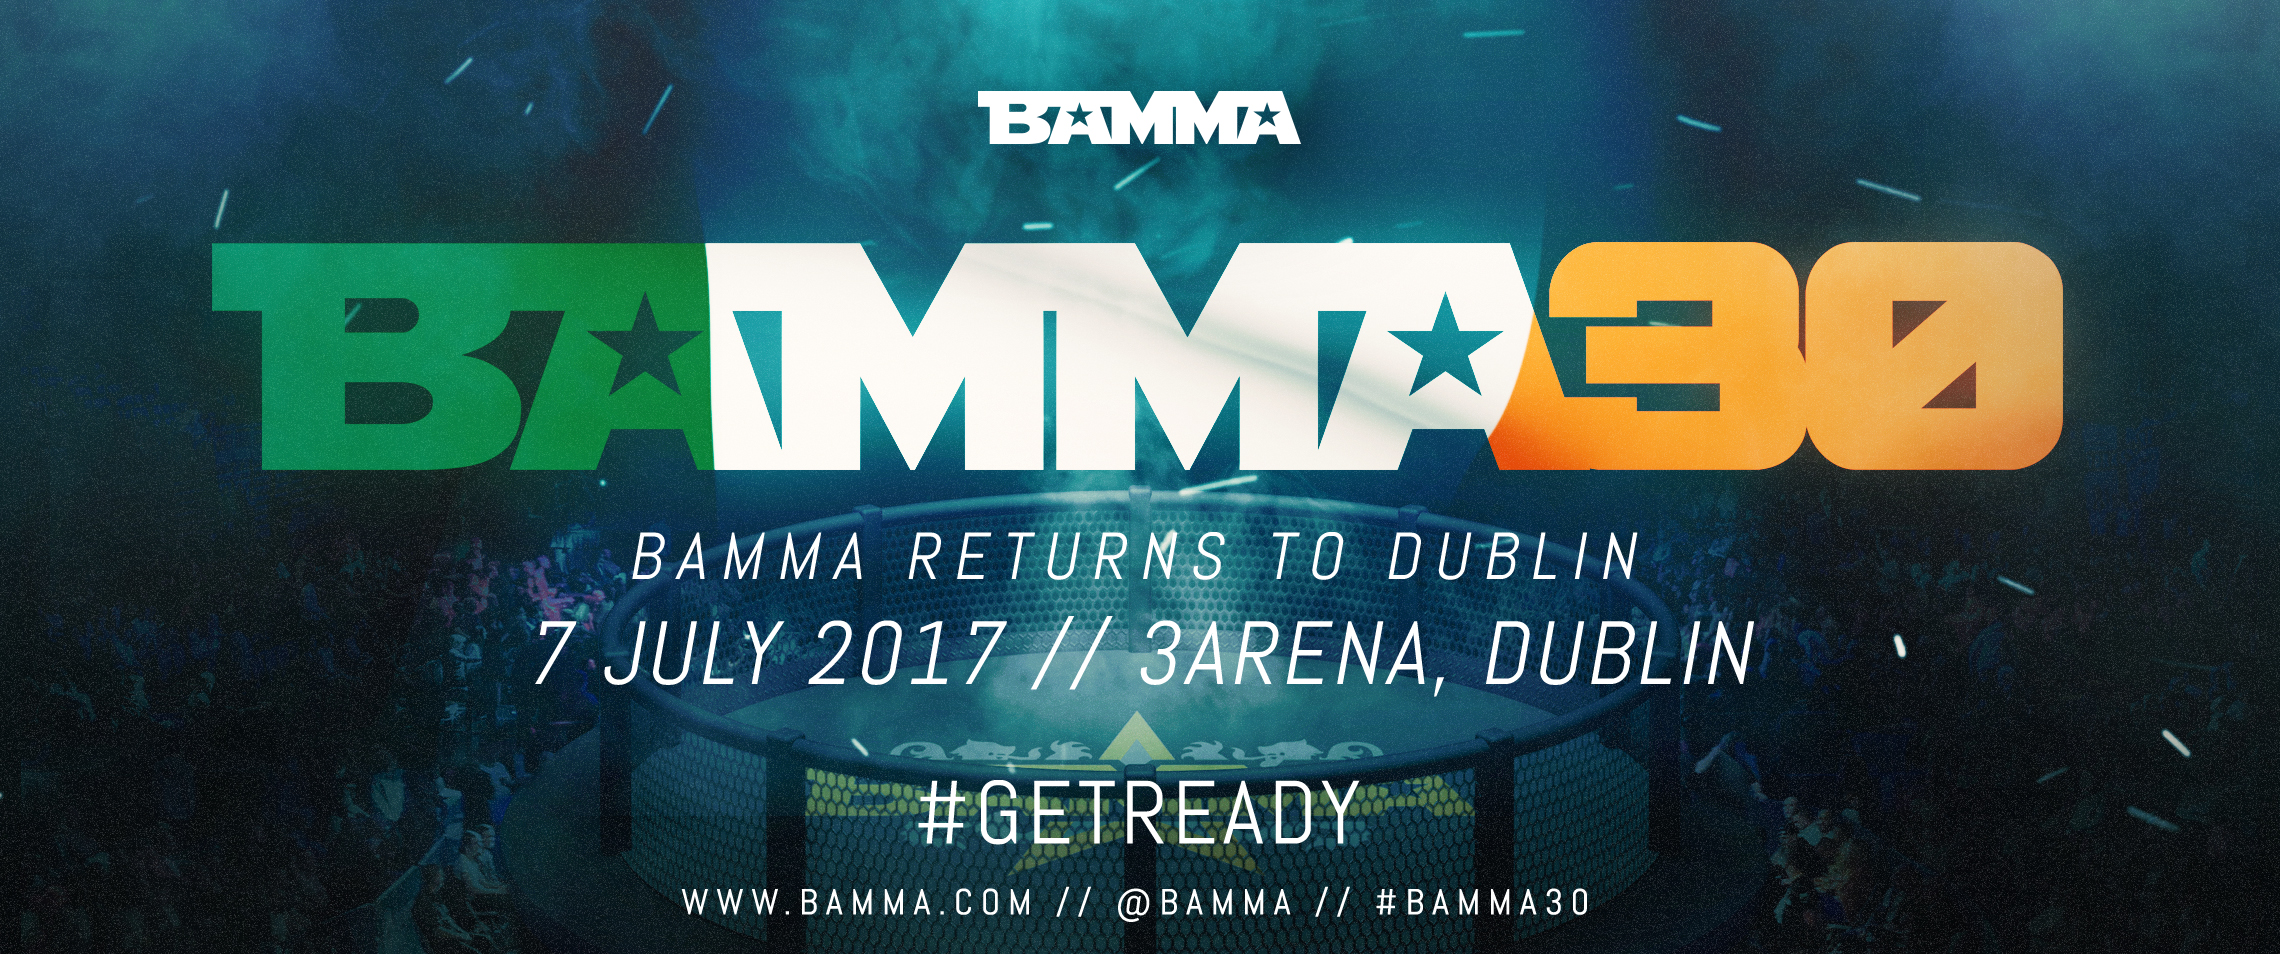 BAMMA 30 Returns to Dublin